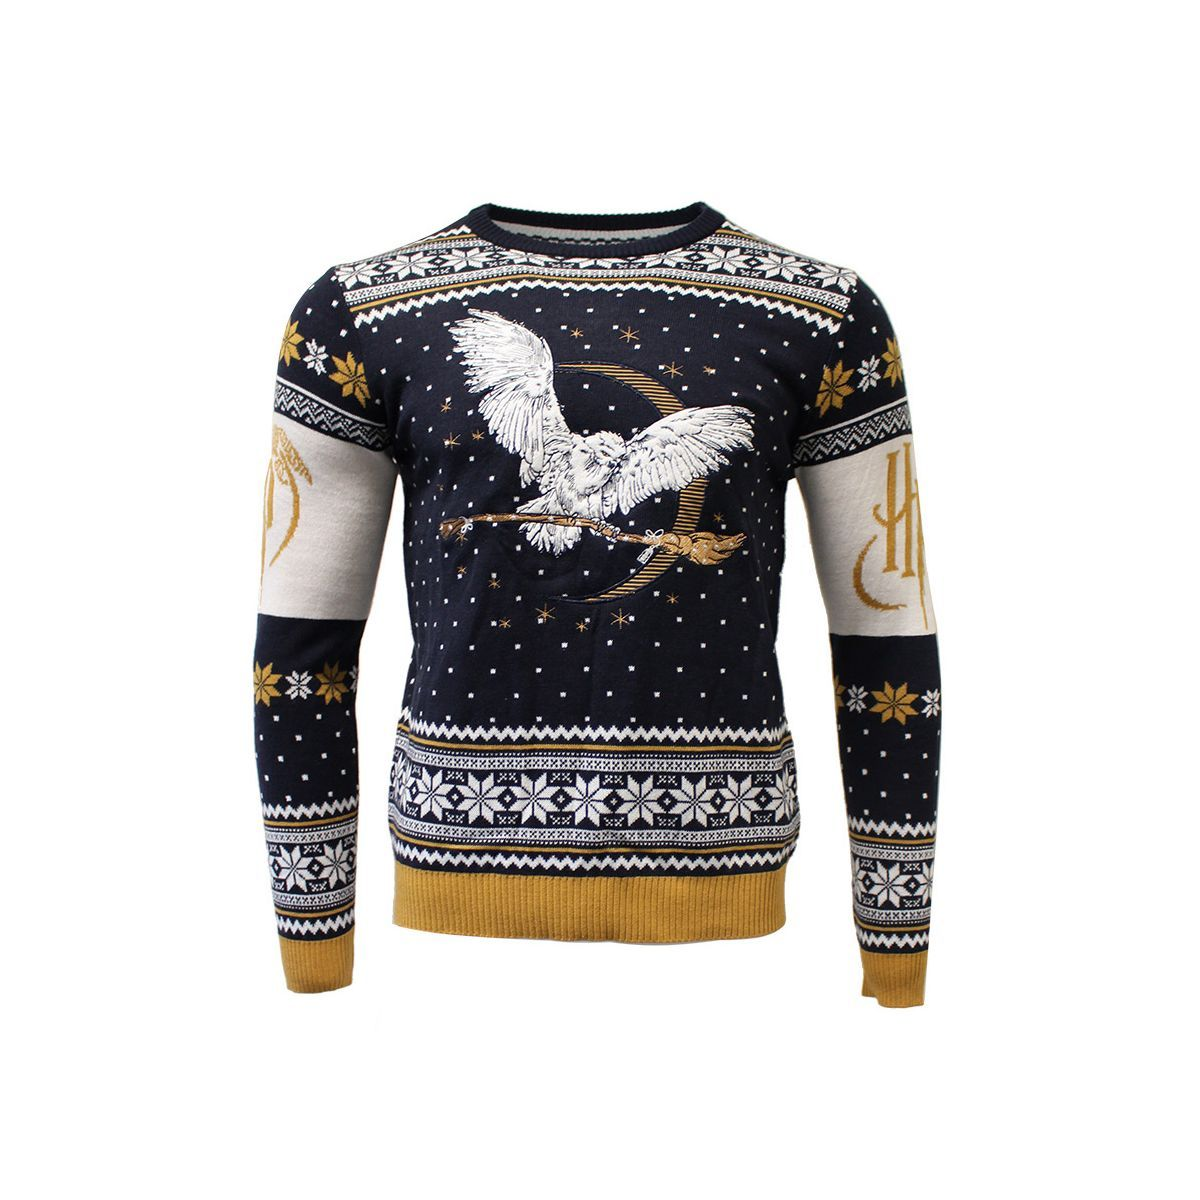 Harry Potter Hedwig Knitted Christmas Jumper Sweater in